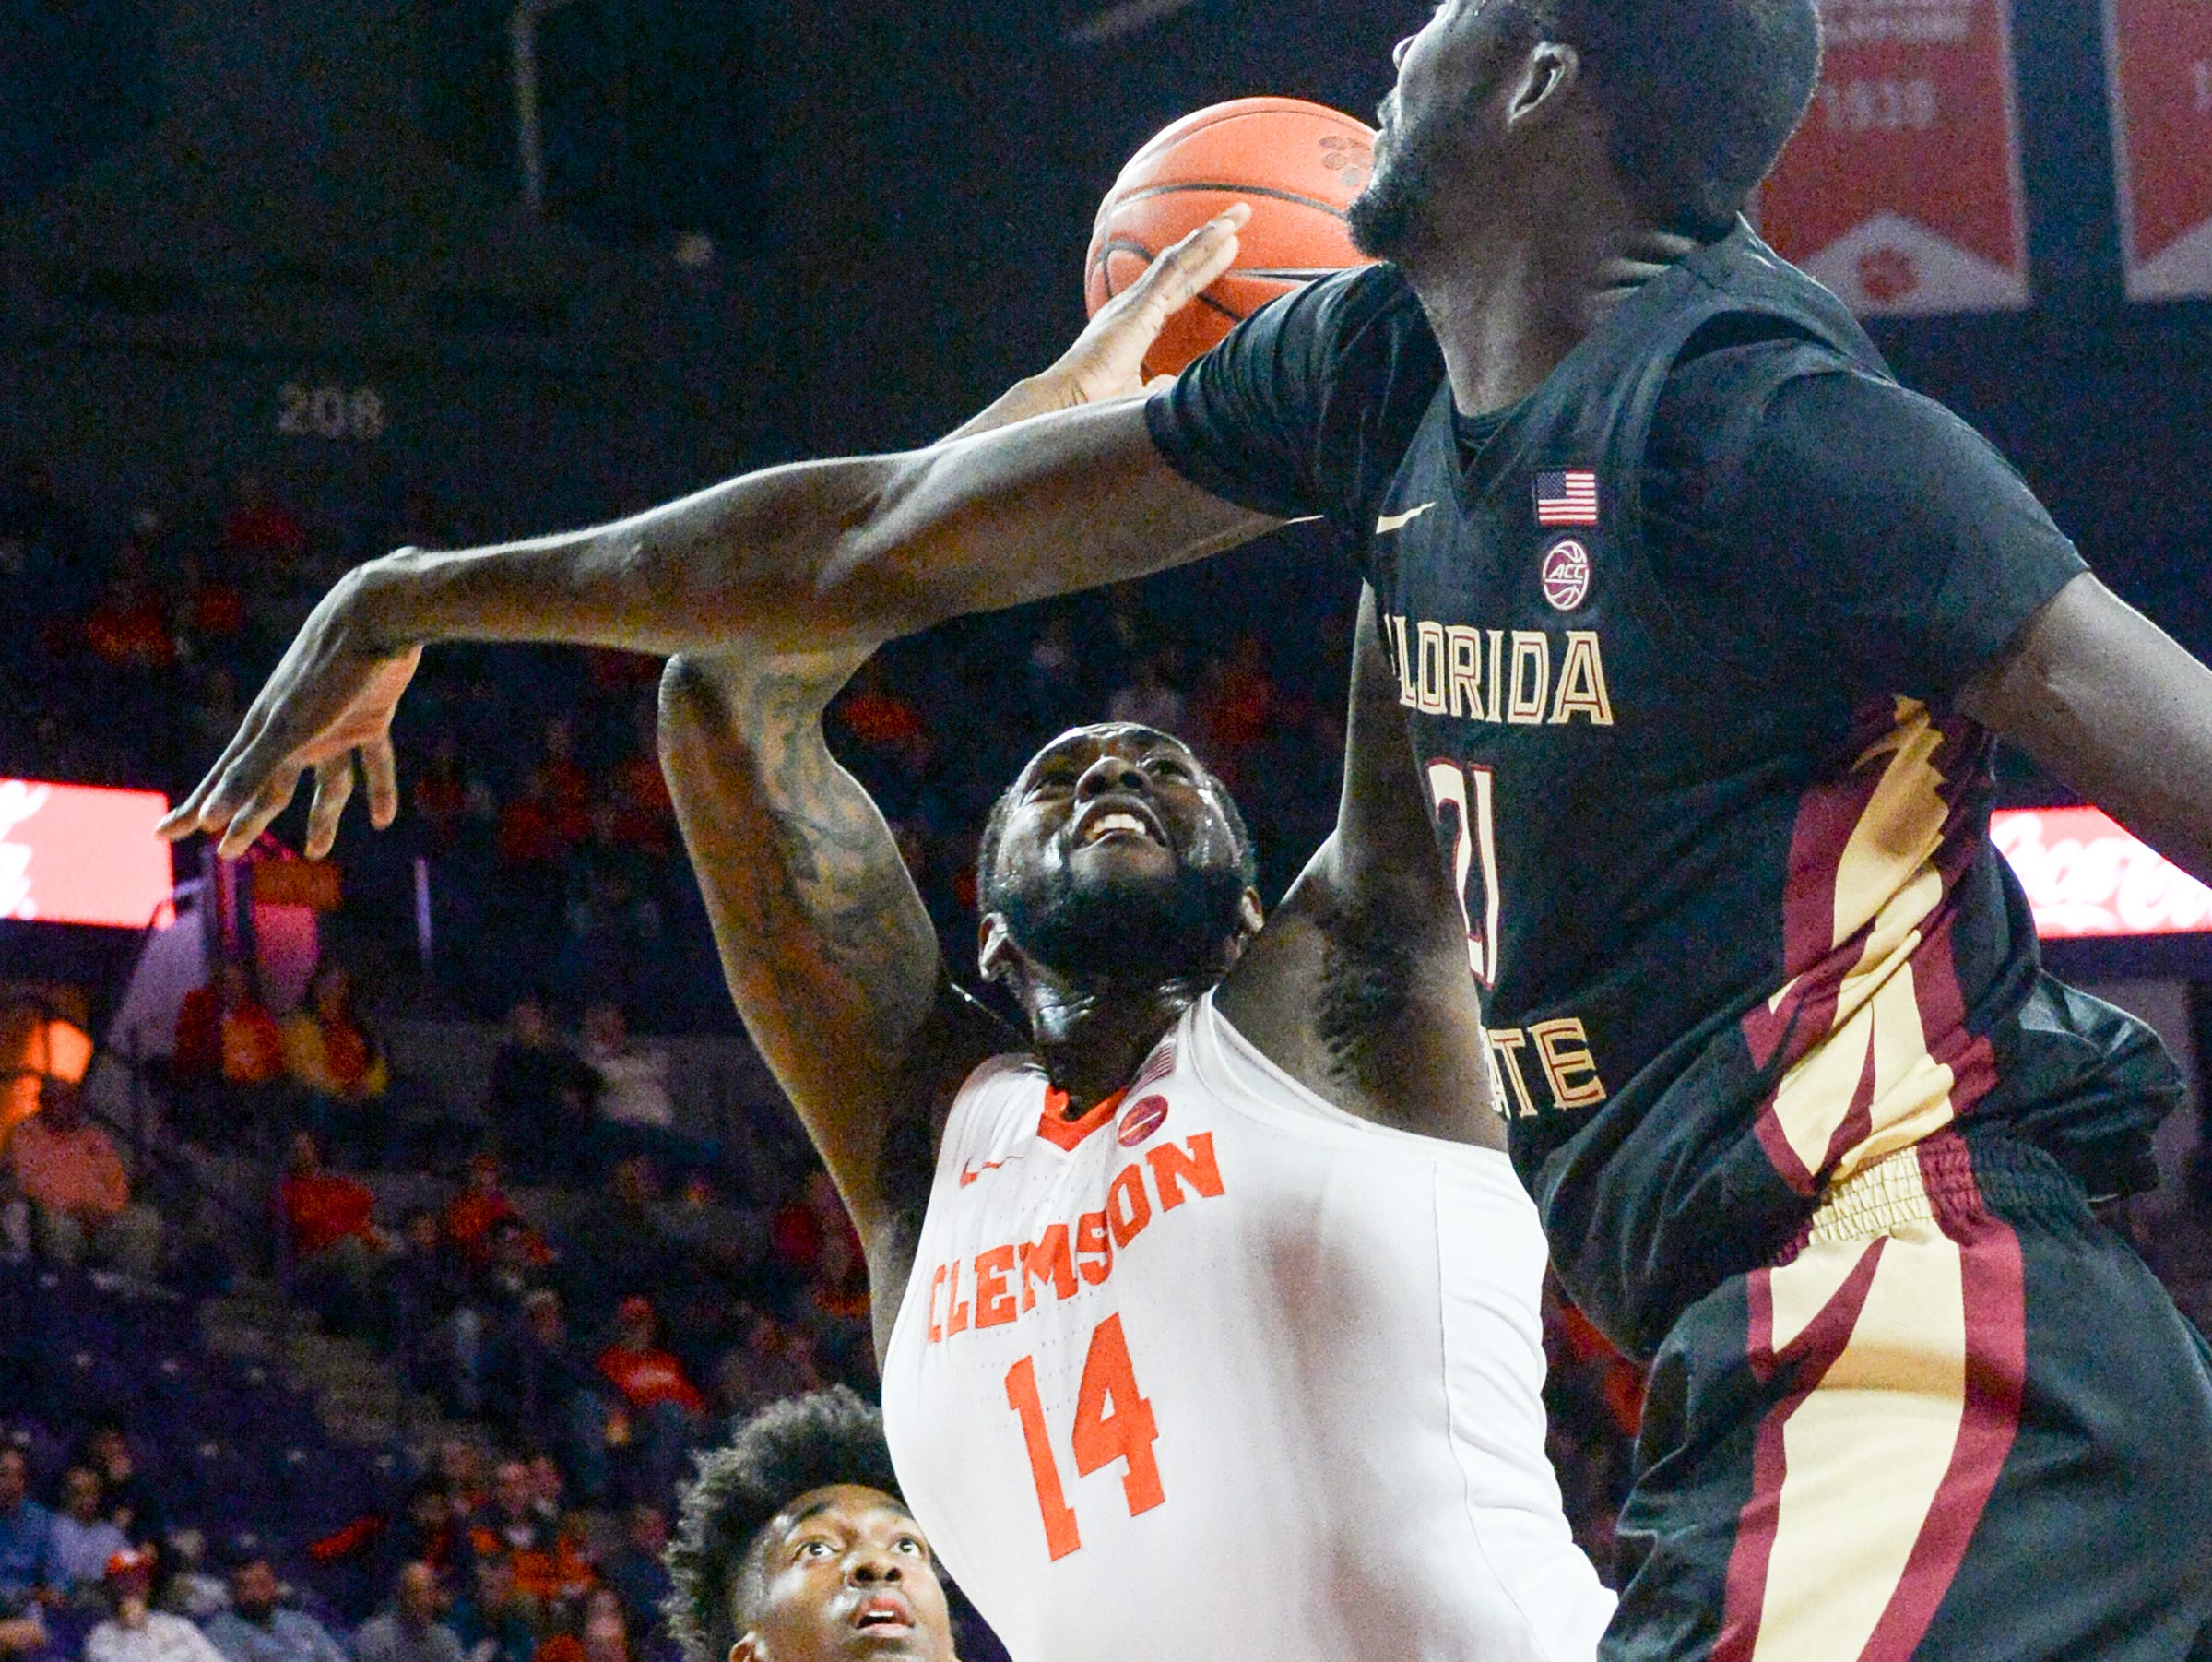 Clemson forward Elijah Thomas (14) shoots near Florida State center Christ Koumadje(21) during the first half at Littlejohn Coliseum in Clemson Tuesday, February 19, 2019.